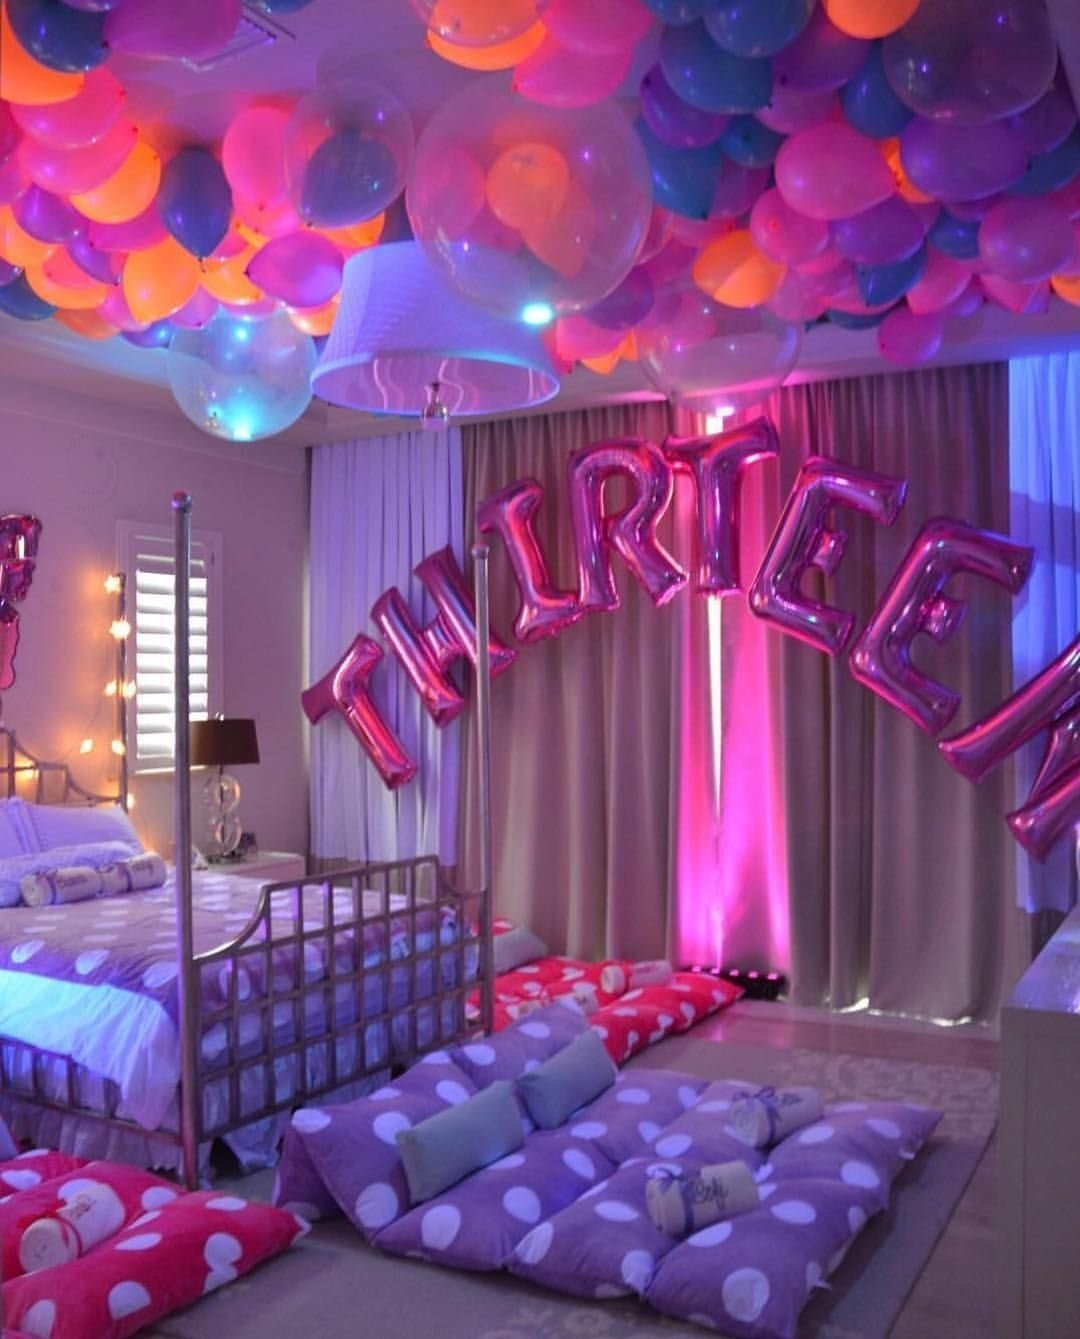 10 Fashionable 13 Year Old Girl Party Ideas the cutest birthday look for a 13 year old girlcenter stage 15 2020